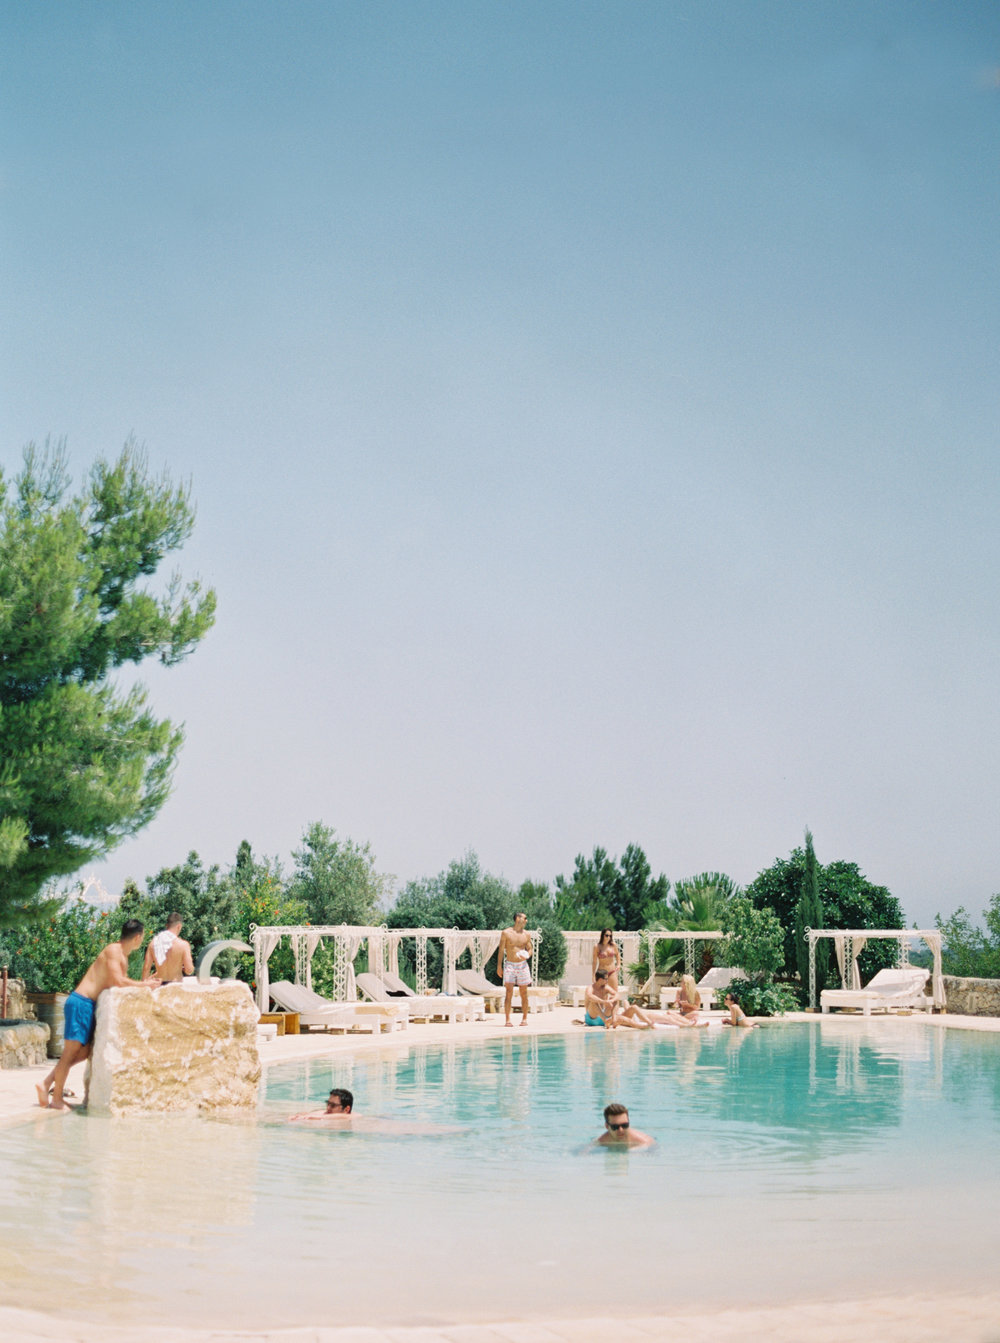 Masseria Montenapoleone - Post wedding pool party planned by Meggie Francisco. Photography by Tracy Enoch. Location: Masseria Montenapolone.